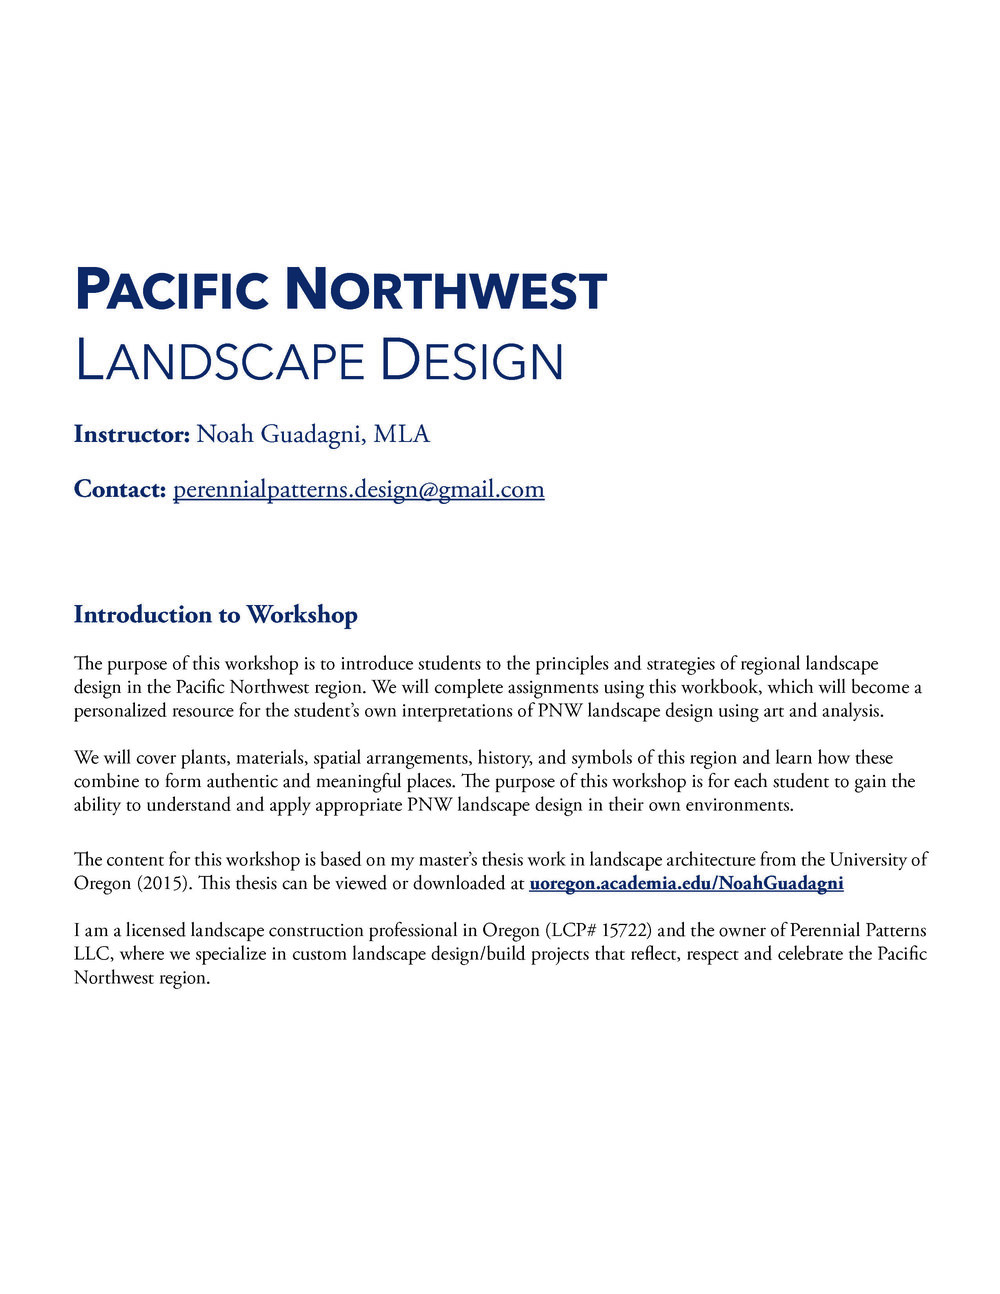 Guadagni_LCC_PNW_Workbook (dragged) 1.jpg